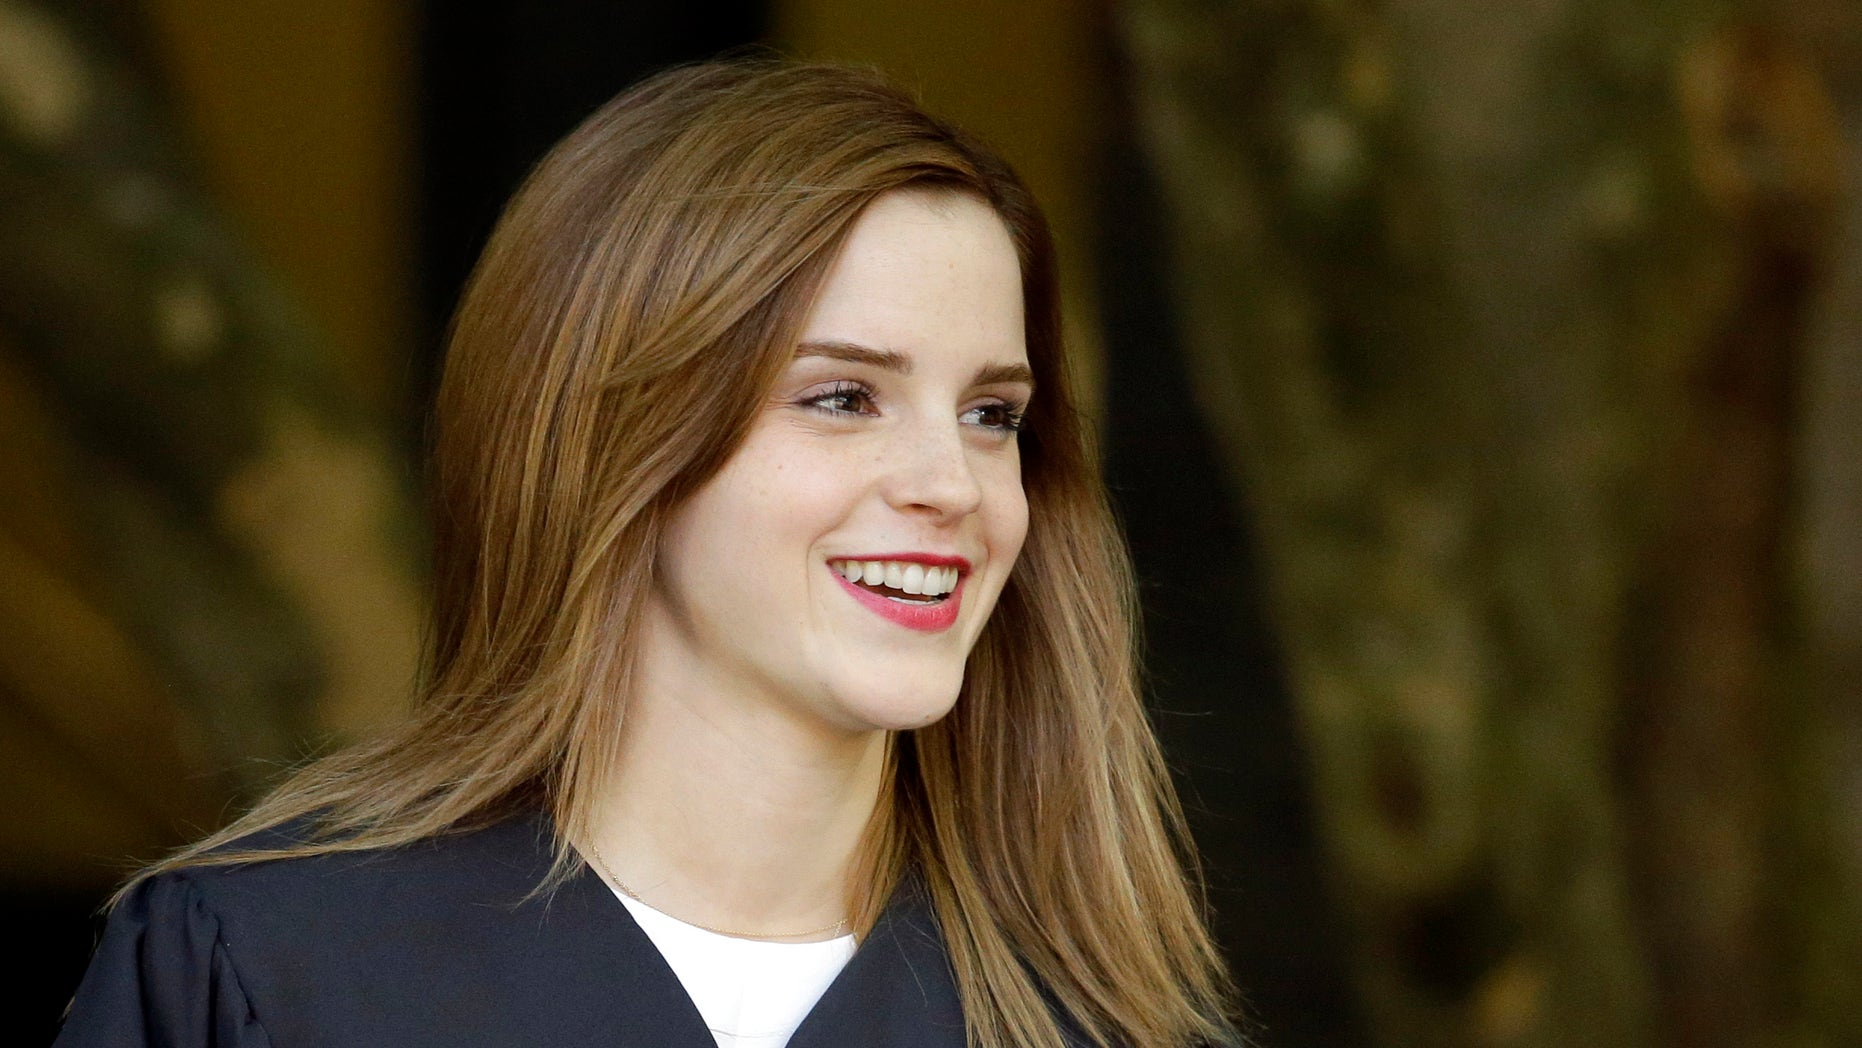 May 25, 2014. Actress Emma Watson walks between buildings following commencement services on the campus of Brown University, Sunday, May 25, 2014, in Providence, R.I. The actress, best known for her role as Hermione Granger in the Harry Potter movies, graduated with a bachelor's degree in English literature from the Ivy League university.